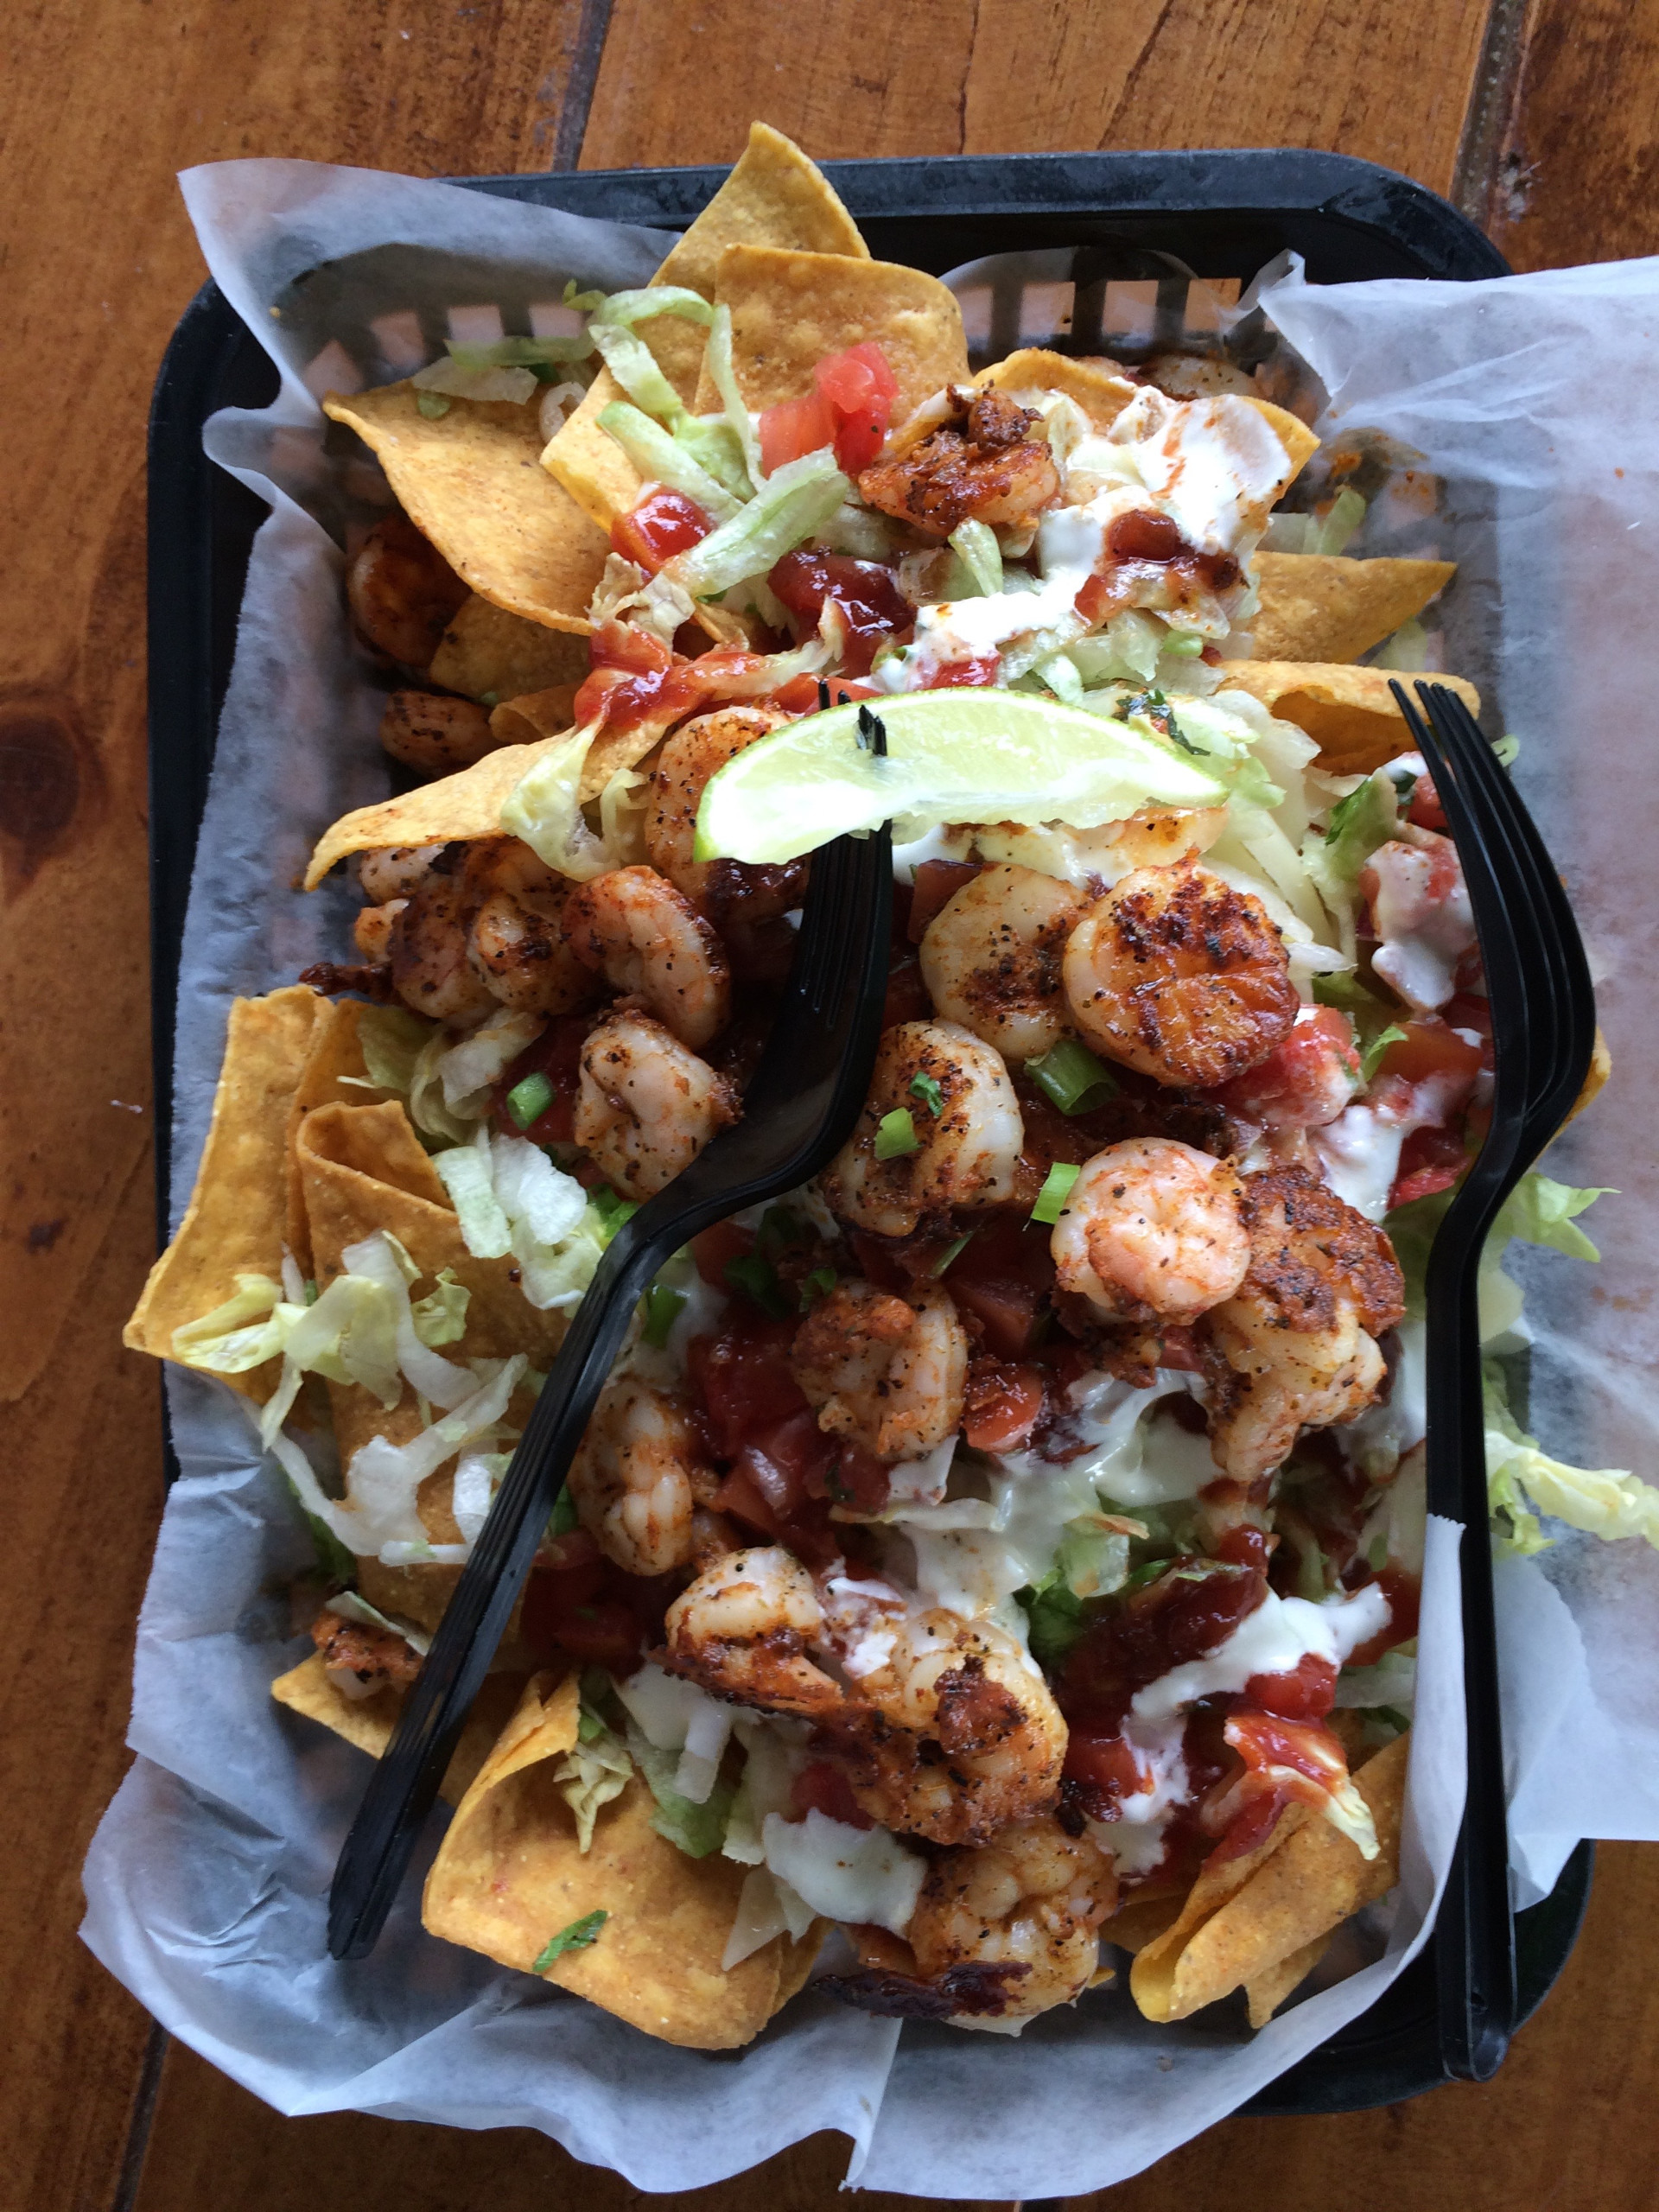 A shrimp taco salad at Safe Harbor Seafood Restaurant in Jacksonville, Florida